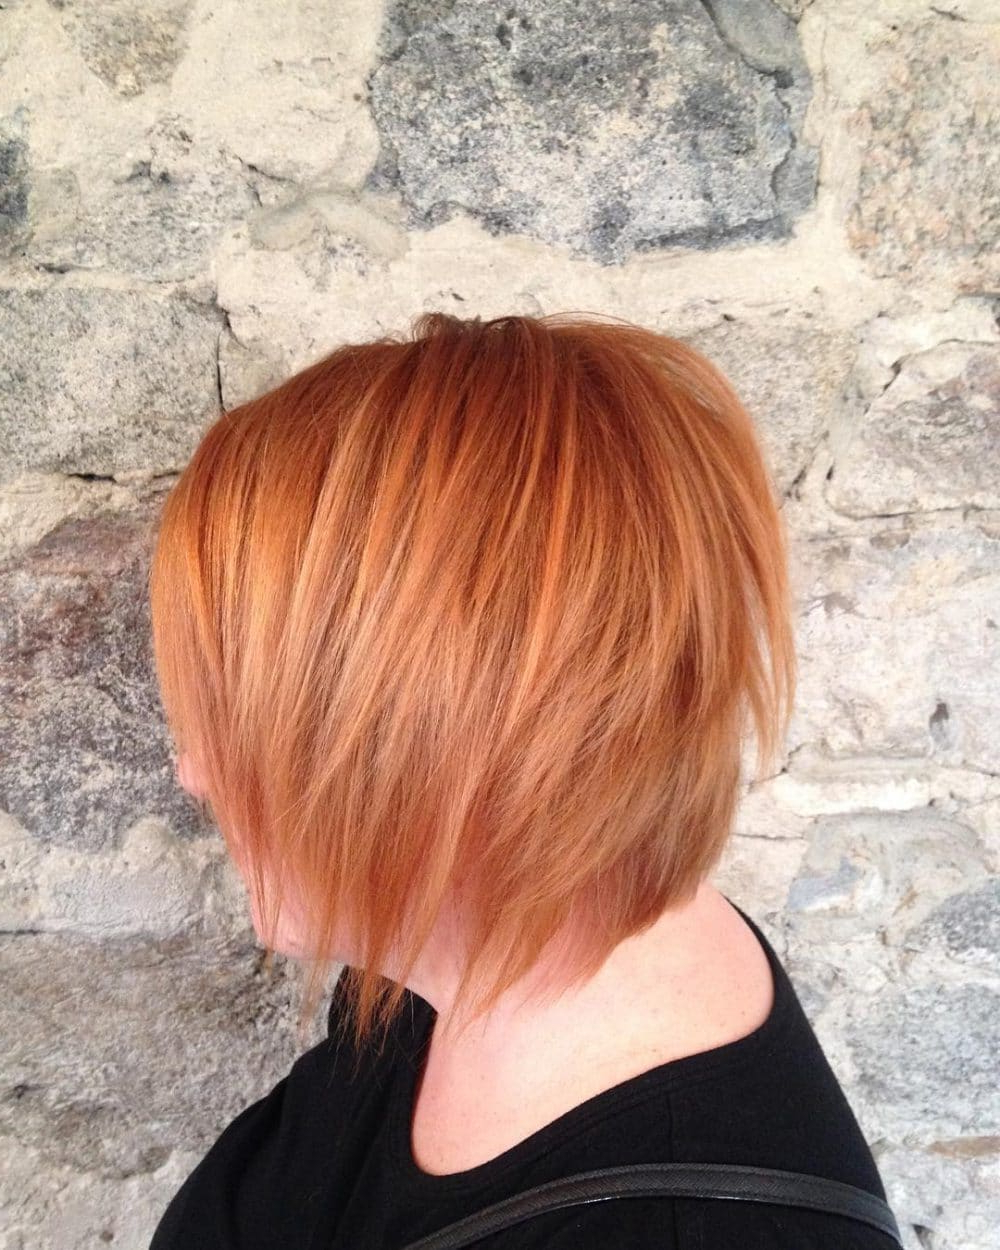 43 Youthful Short Hairstyles For Women Over 50 (With Fine With Dusty Lavender Short Shag Haircuts (View 11 of 20)